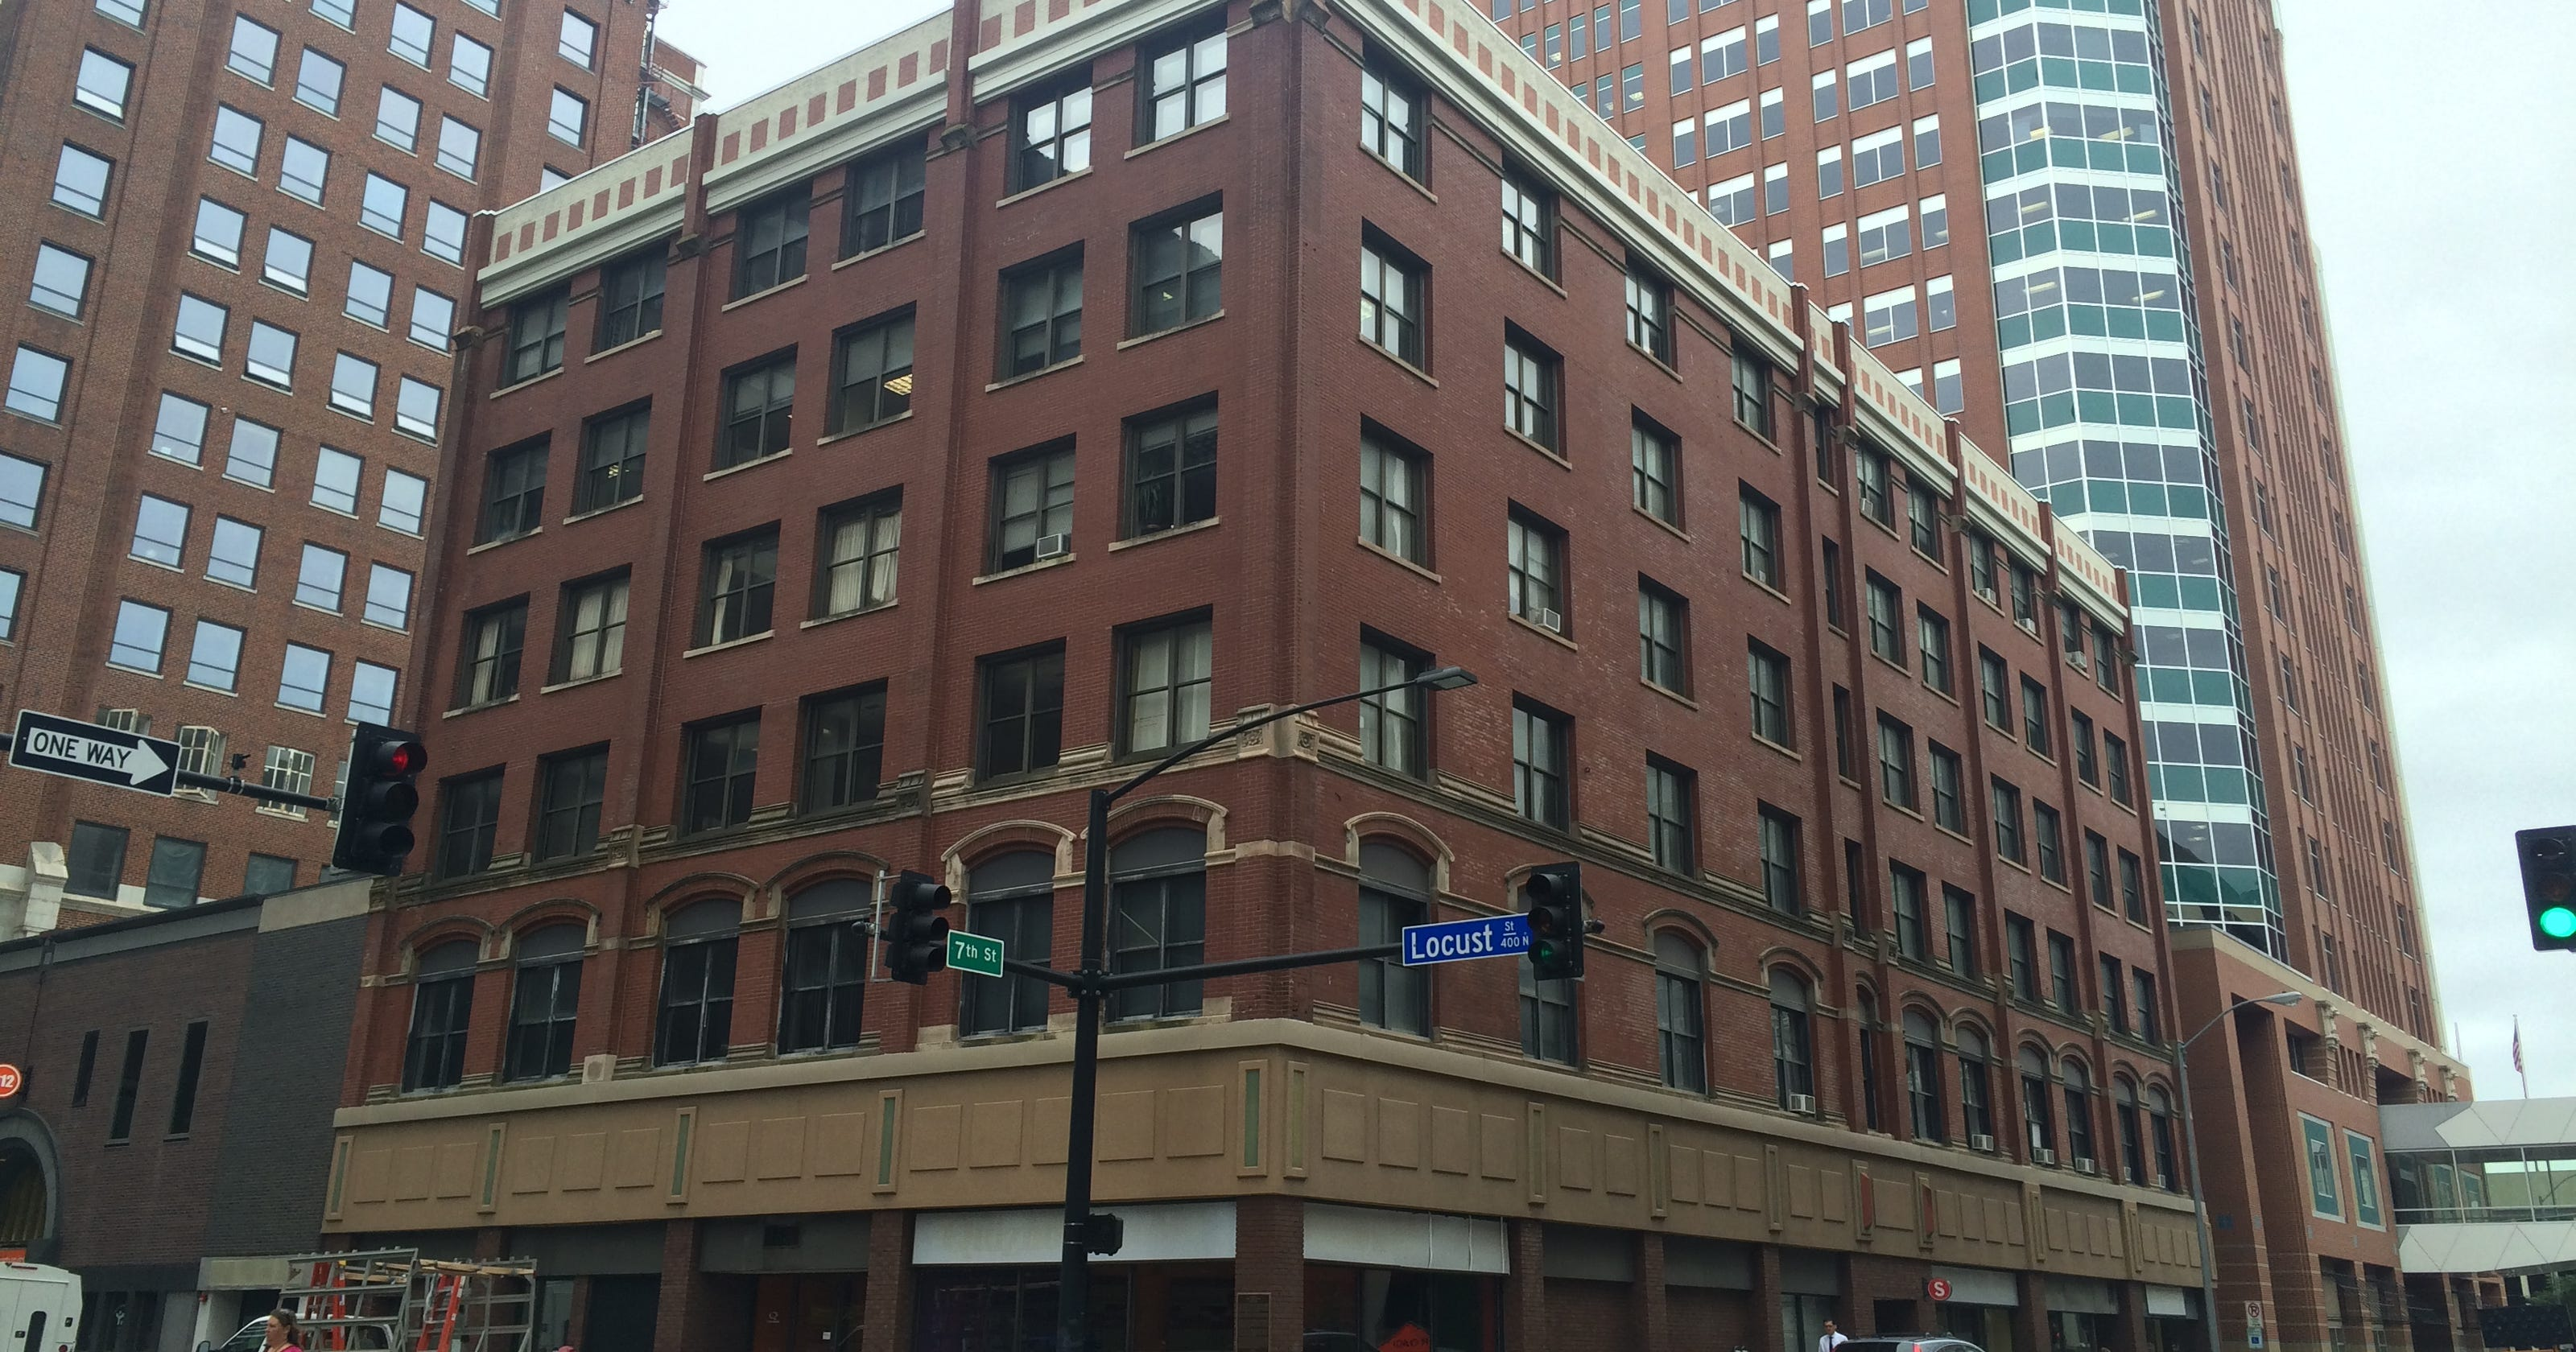 Downtown Des Moines Civil Rights Landmark Will Be Renovated To